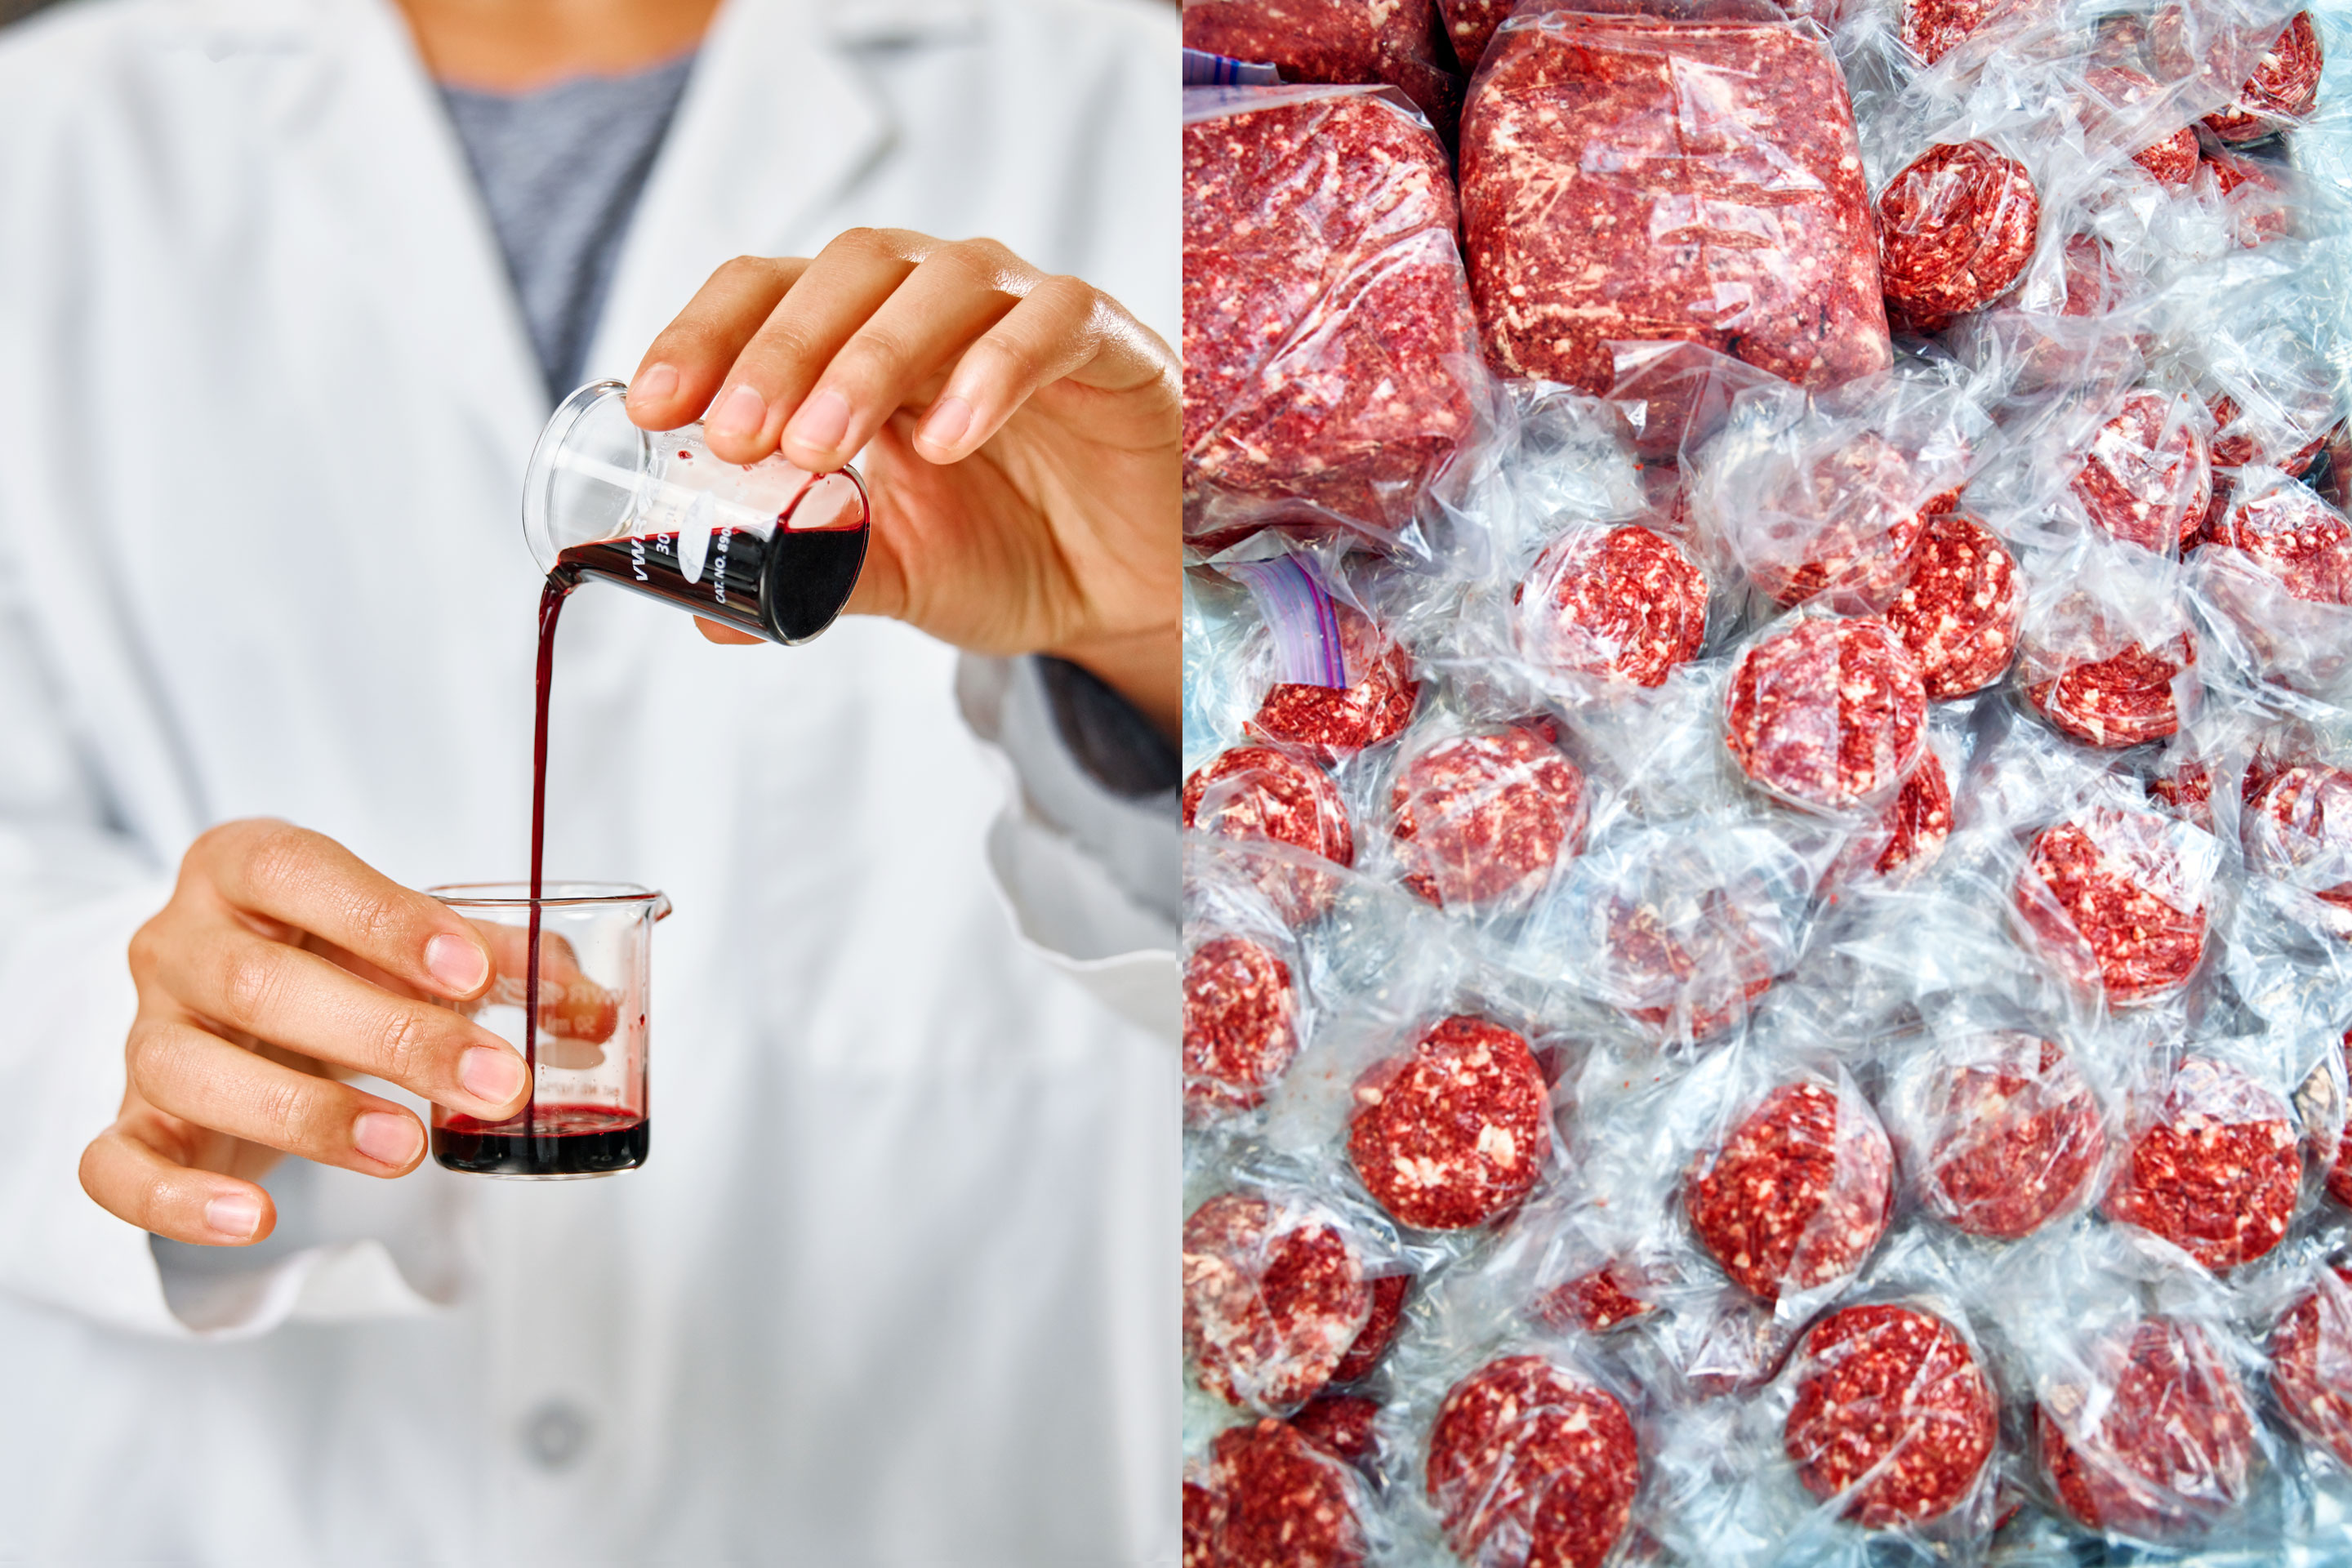 A technician pours heme—what Impossible Foods considers the essence of meat—at the company's lab in Redwood City, Calif. At right, the startup's plant-based meat patties.